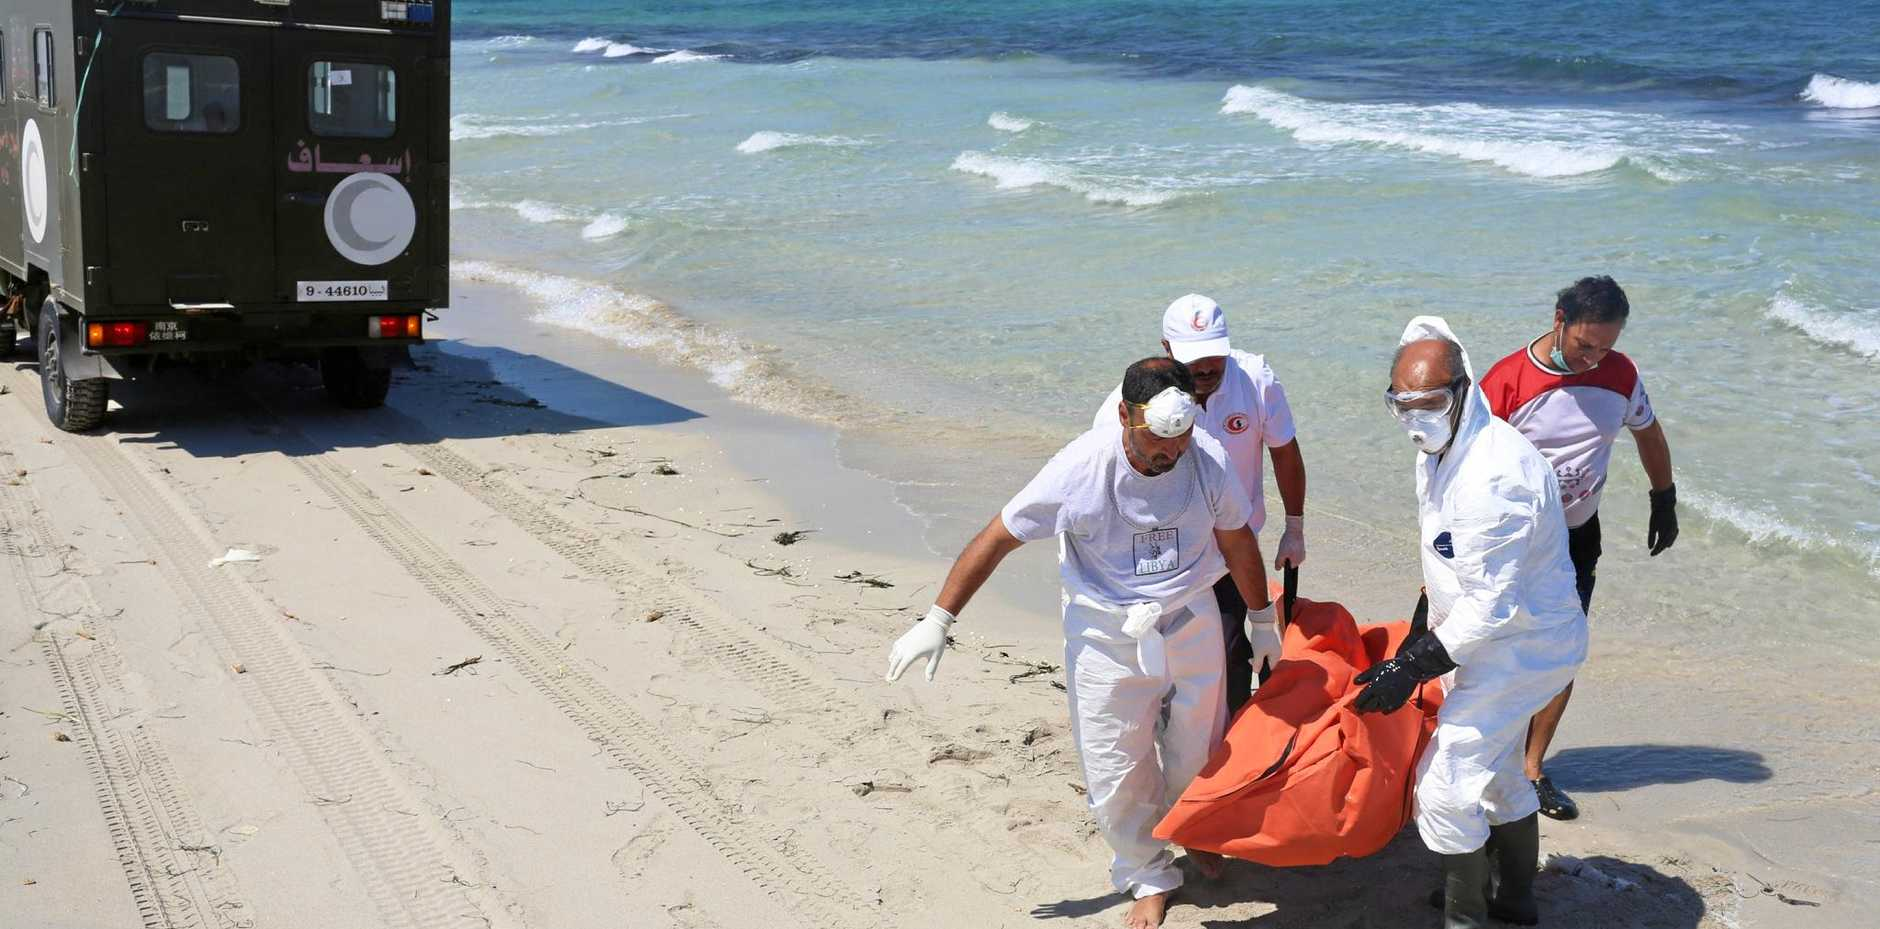 Libyan Red Crescent workers have retrieved numerous bodies from the sea over the past year.